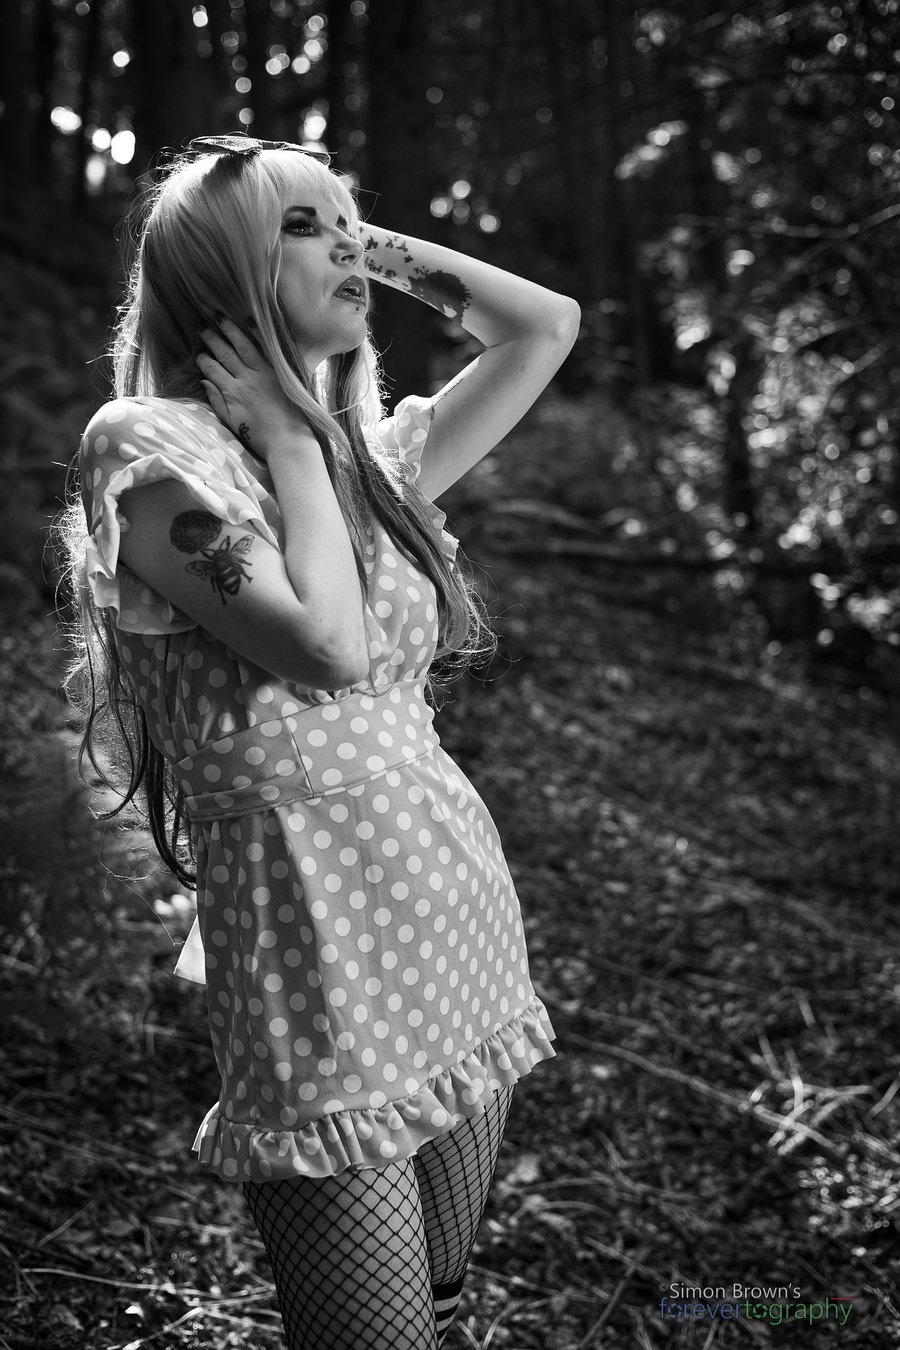 Almost heaven / Photography by Simon Brown's Forevertography, Model Princess Bee / Uploaded 13th October 2021 @ 06:38 AM